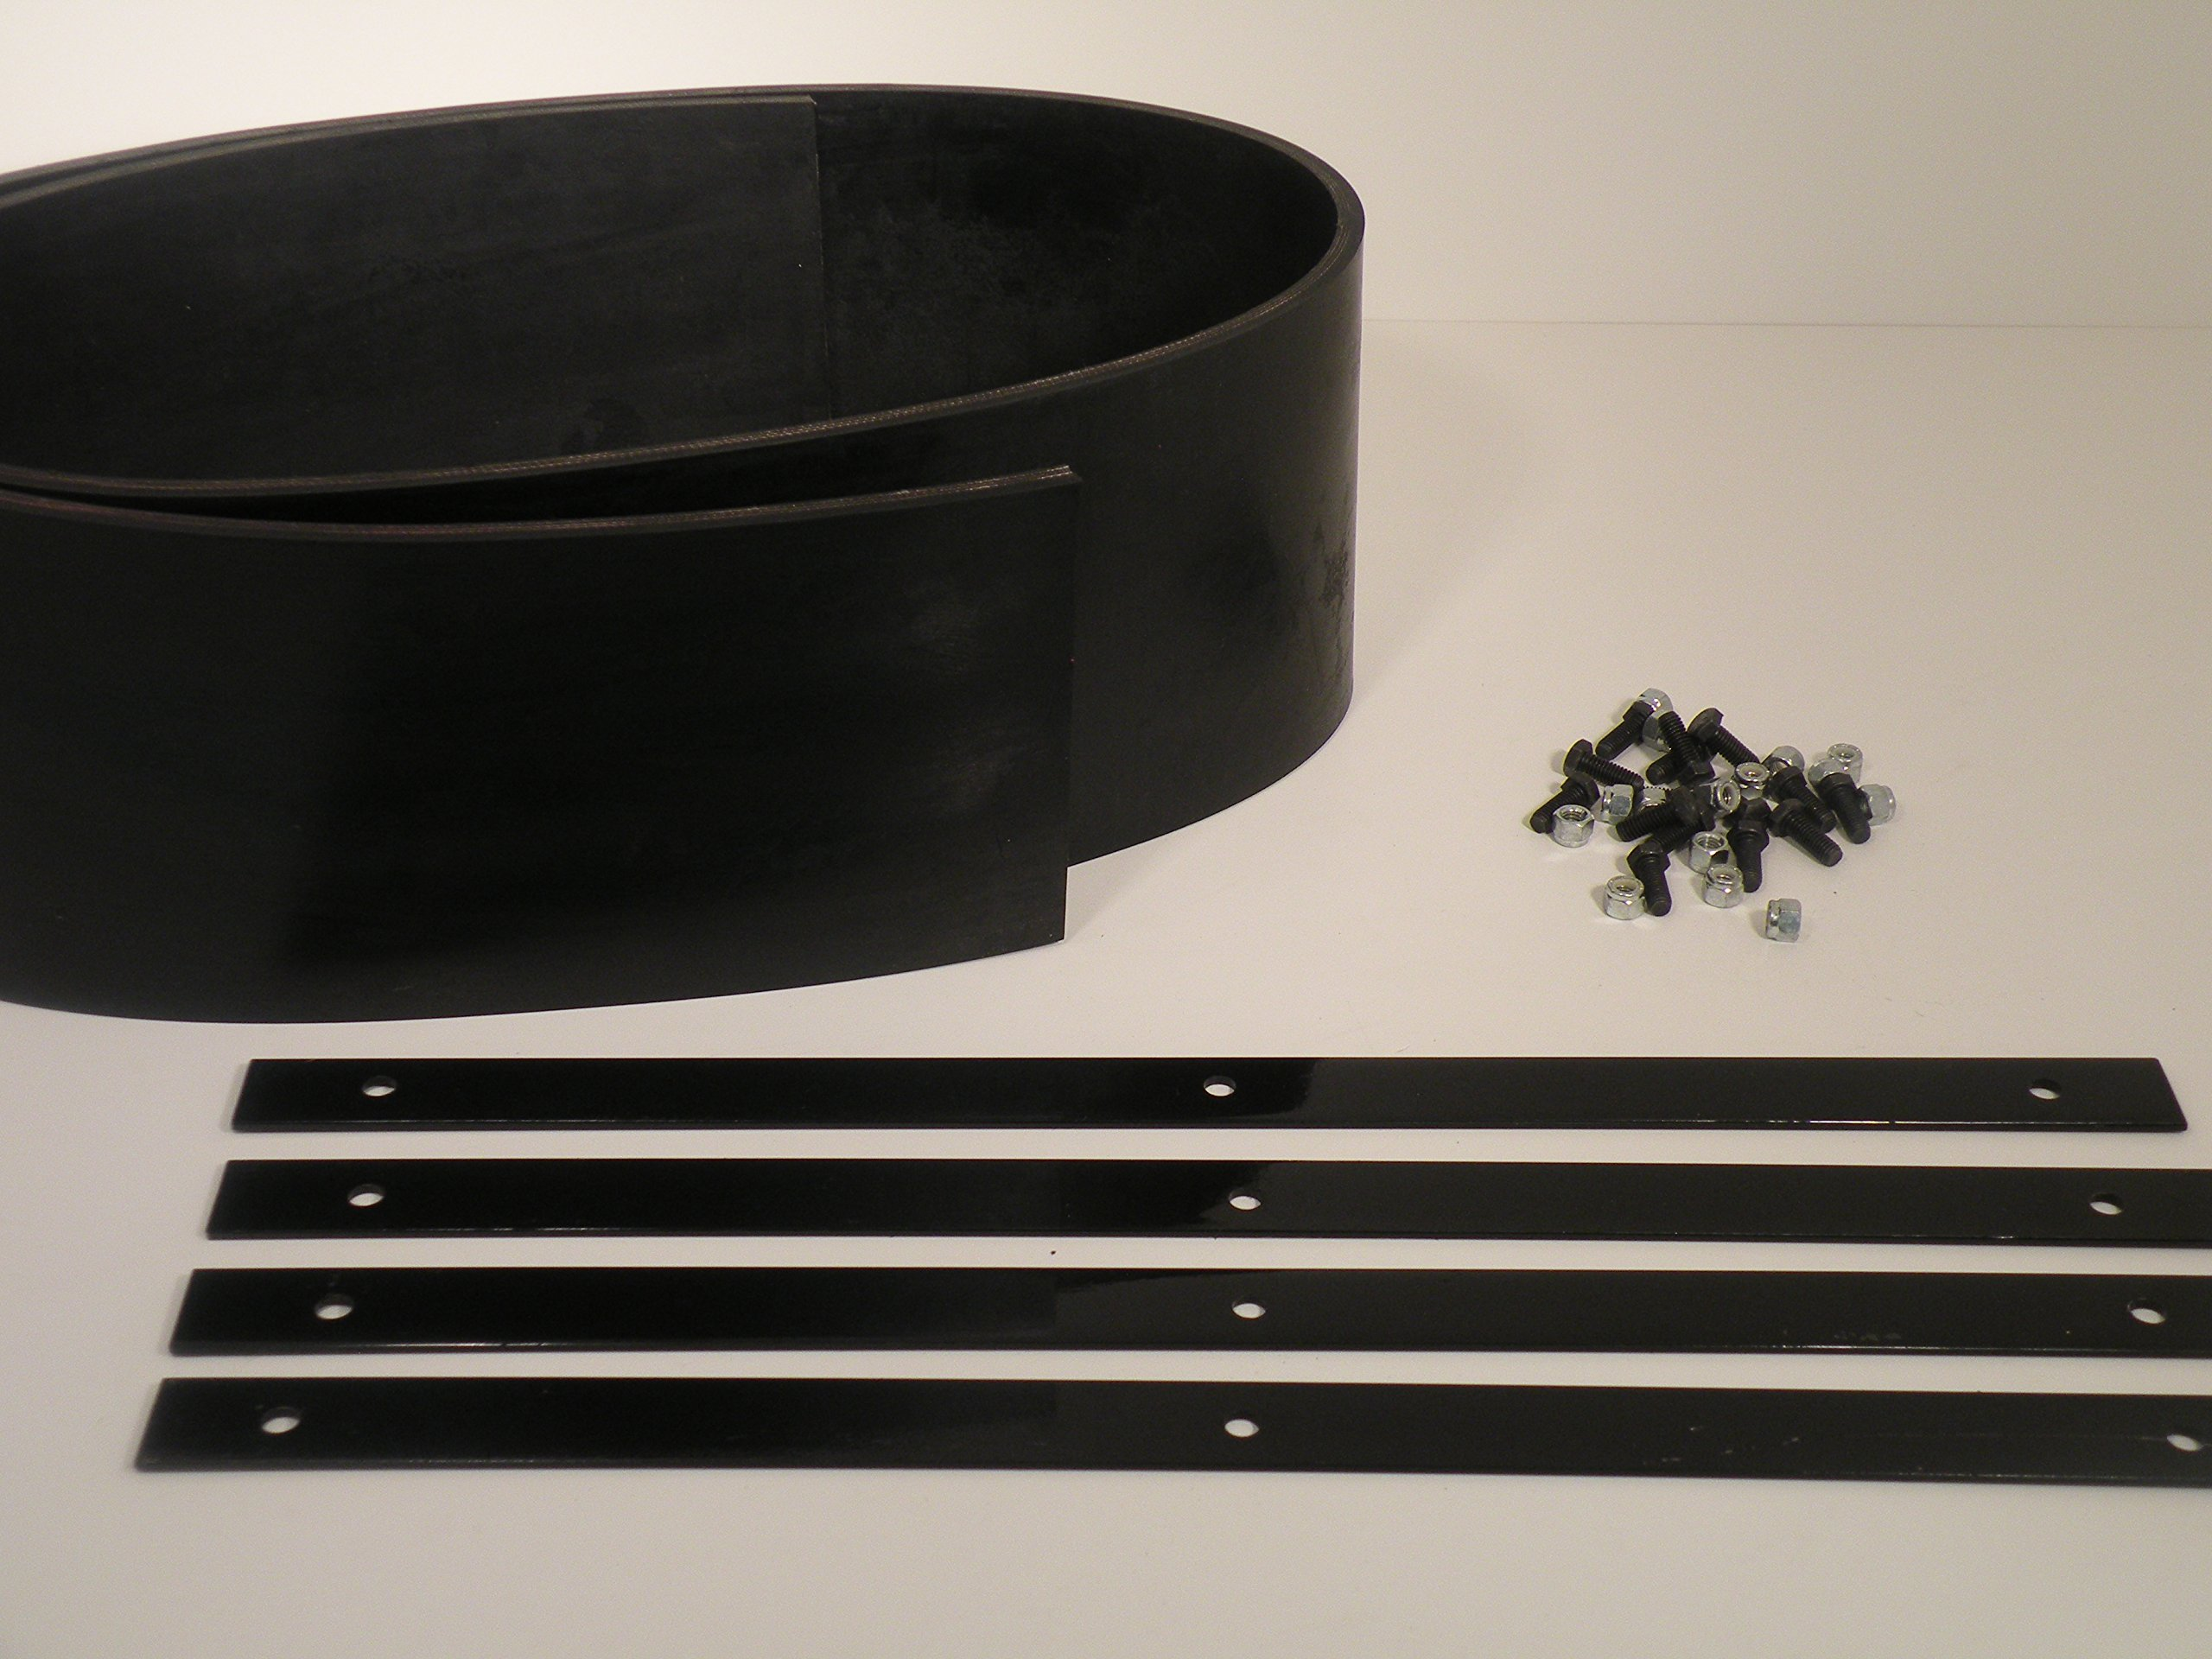 Universal Heavy Duty Rubber Snow Deflector Kit up to 8-10 Ft. Straight Plow by PlowRubber.com